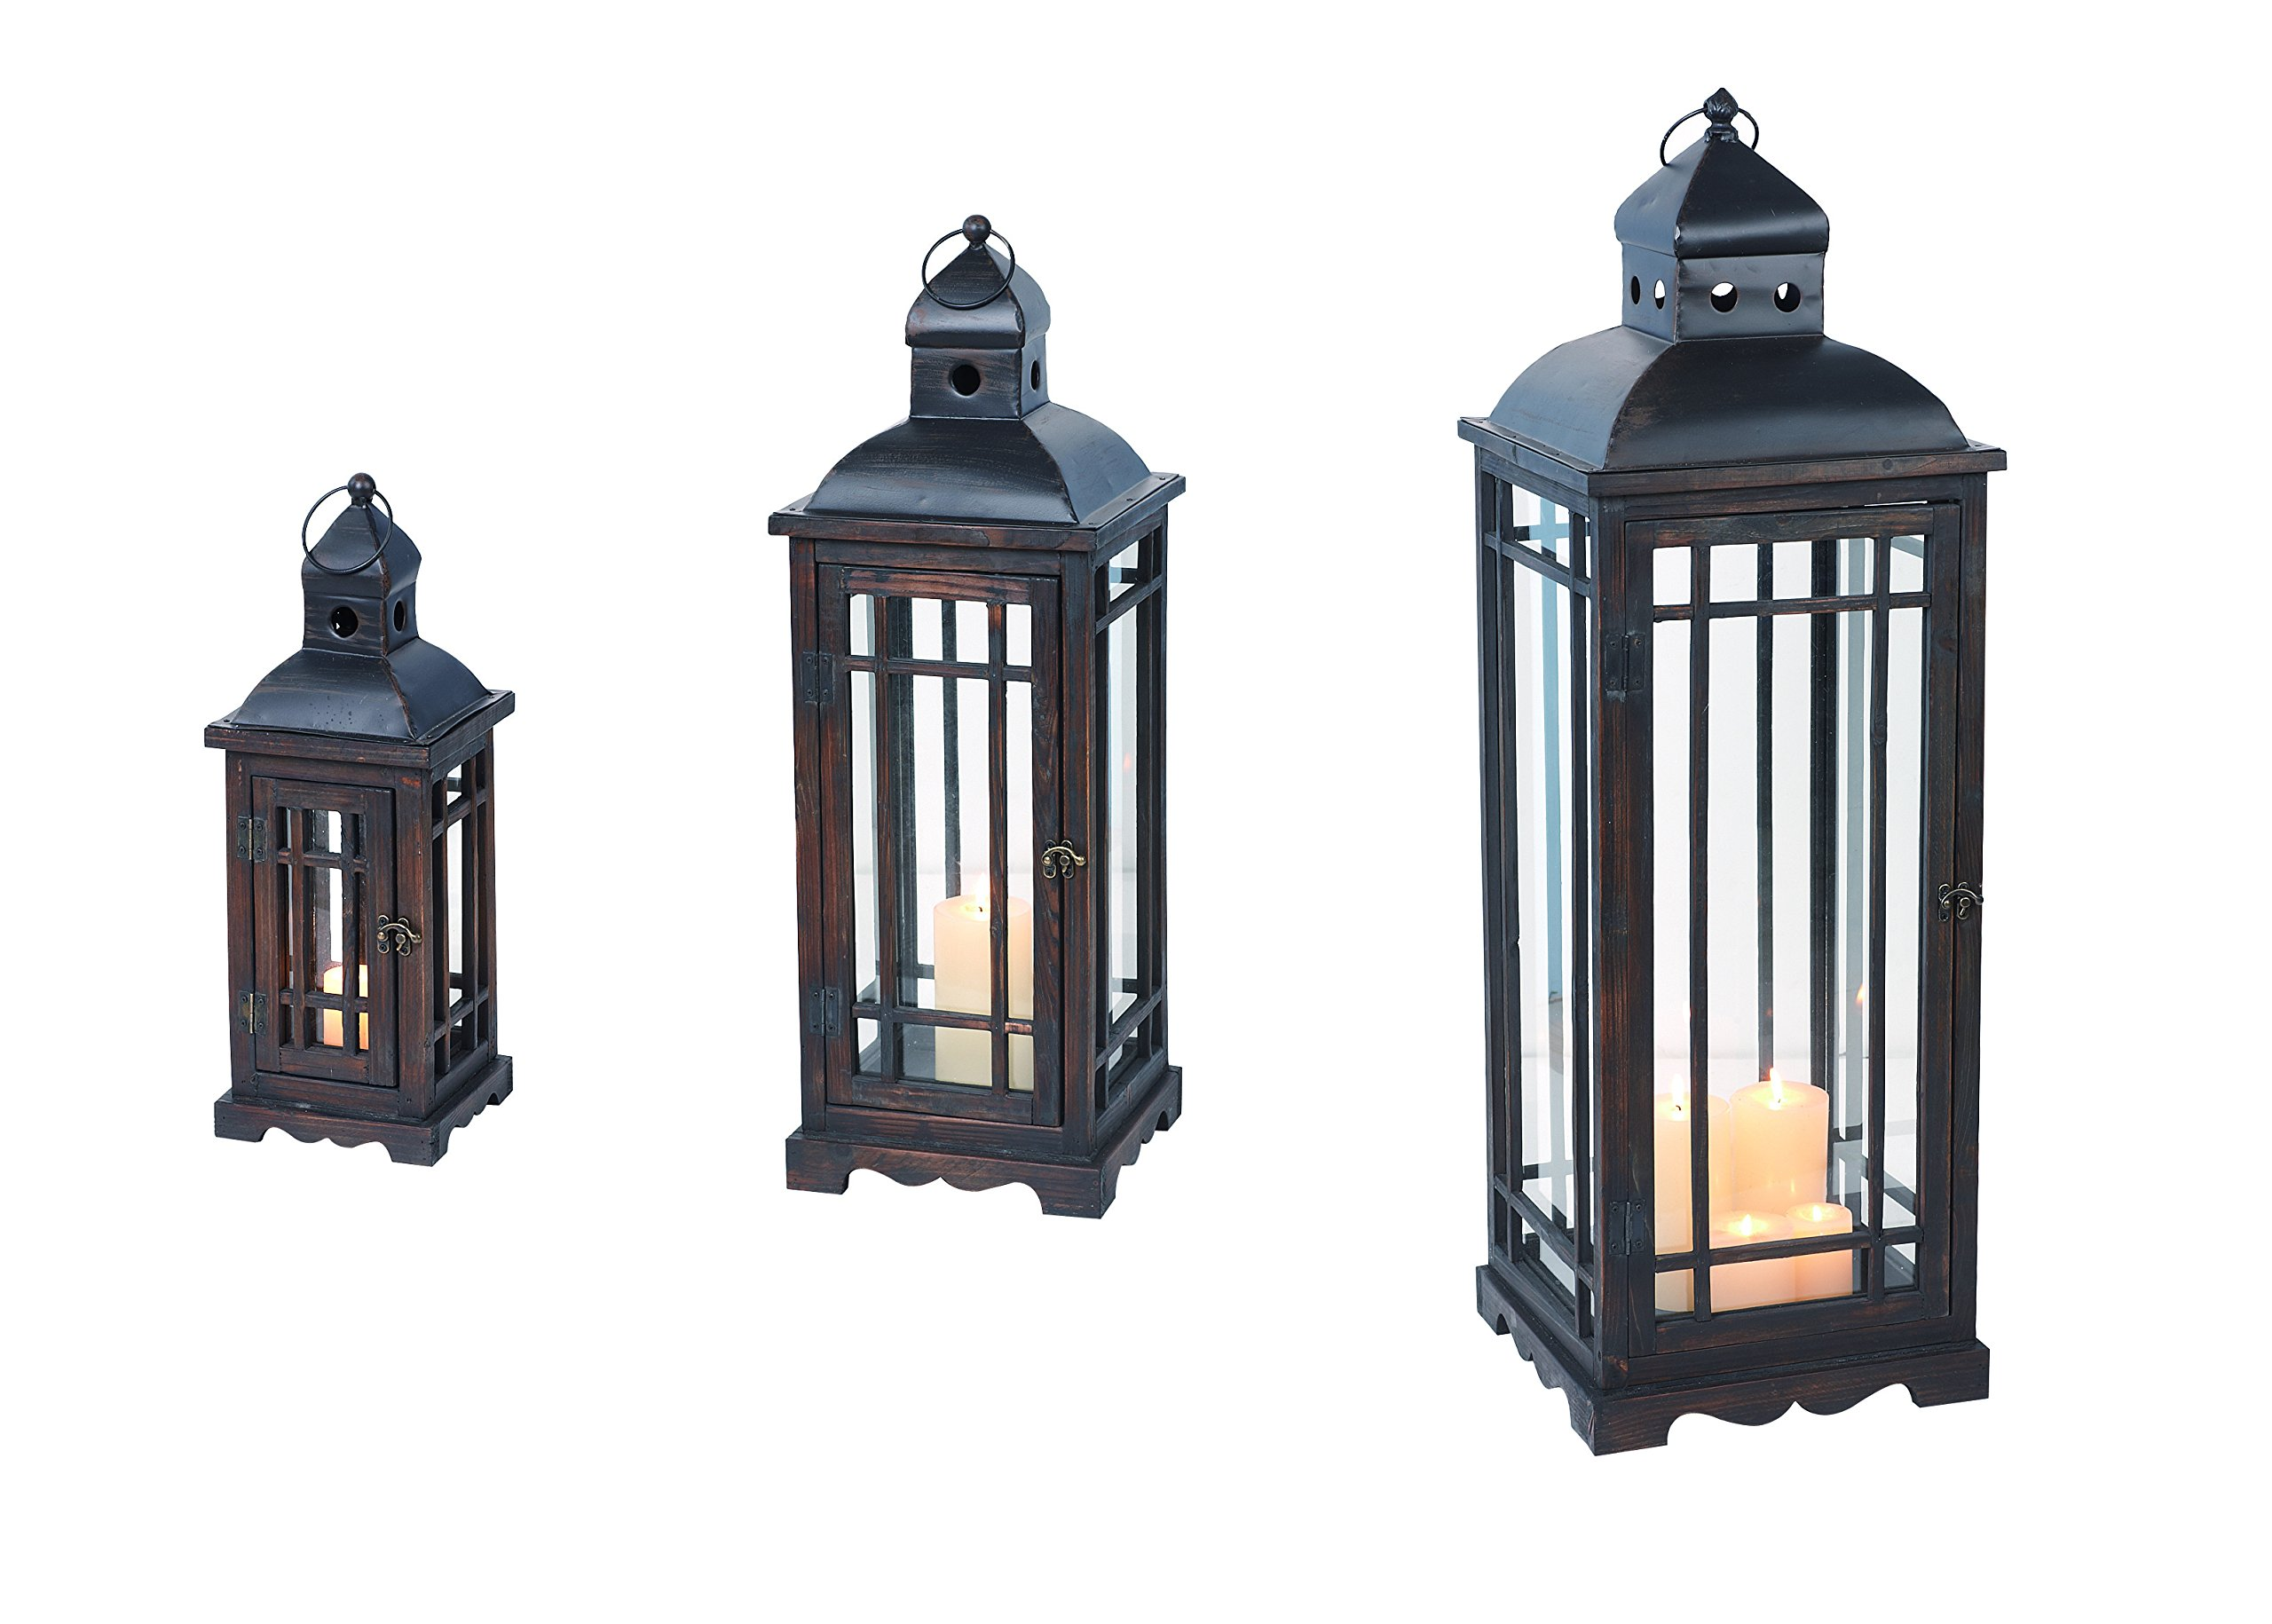 Transpac Home and Garden Wood and Metal Lanterns, Set of 3